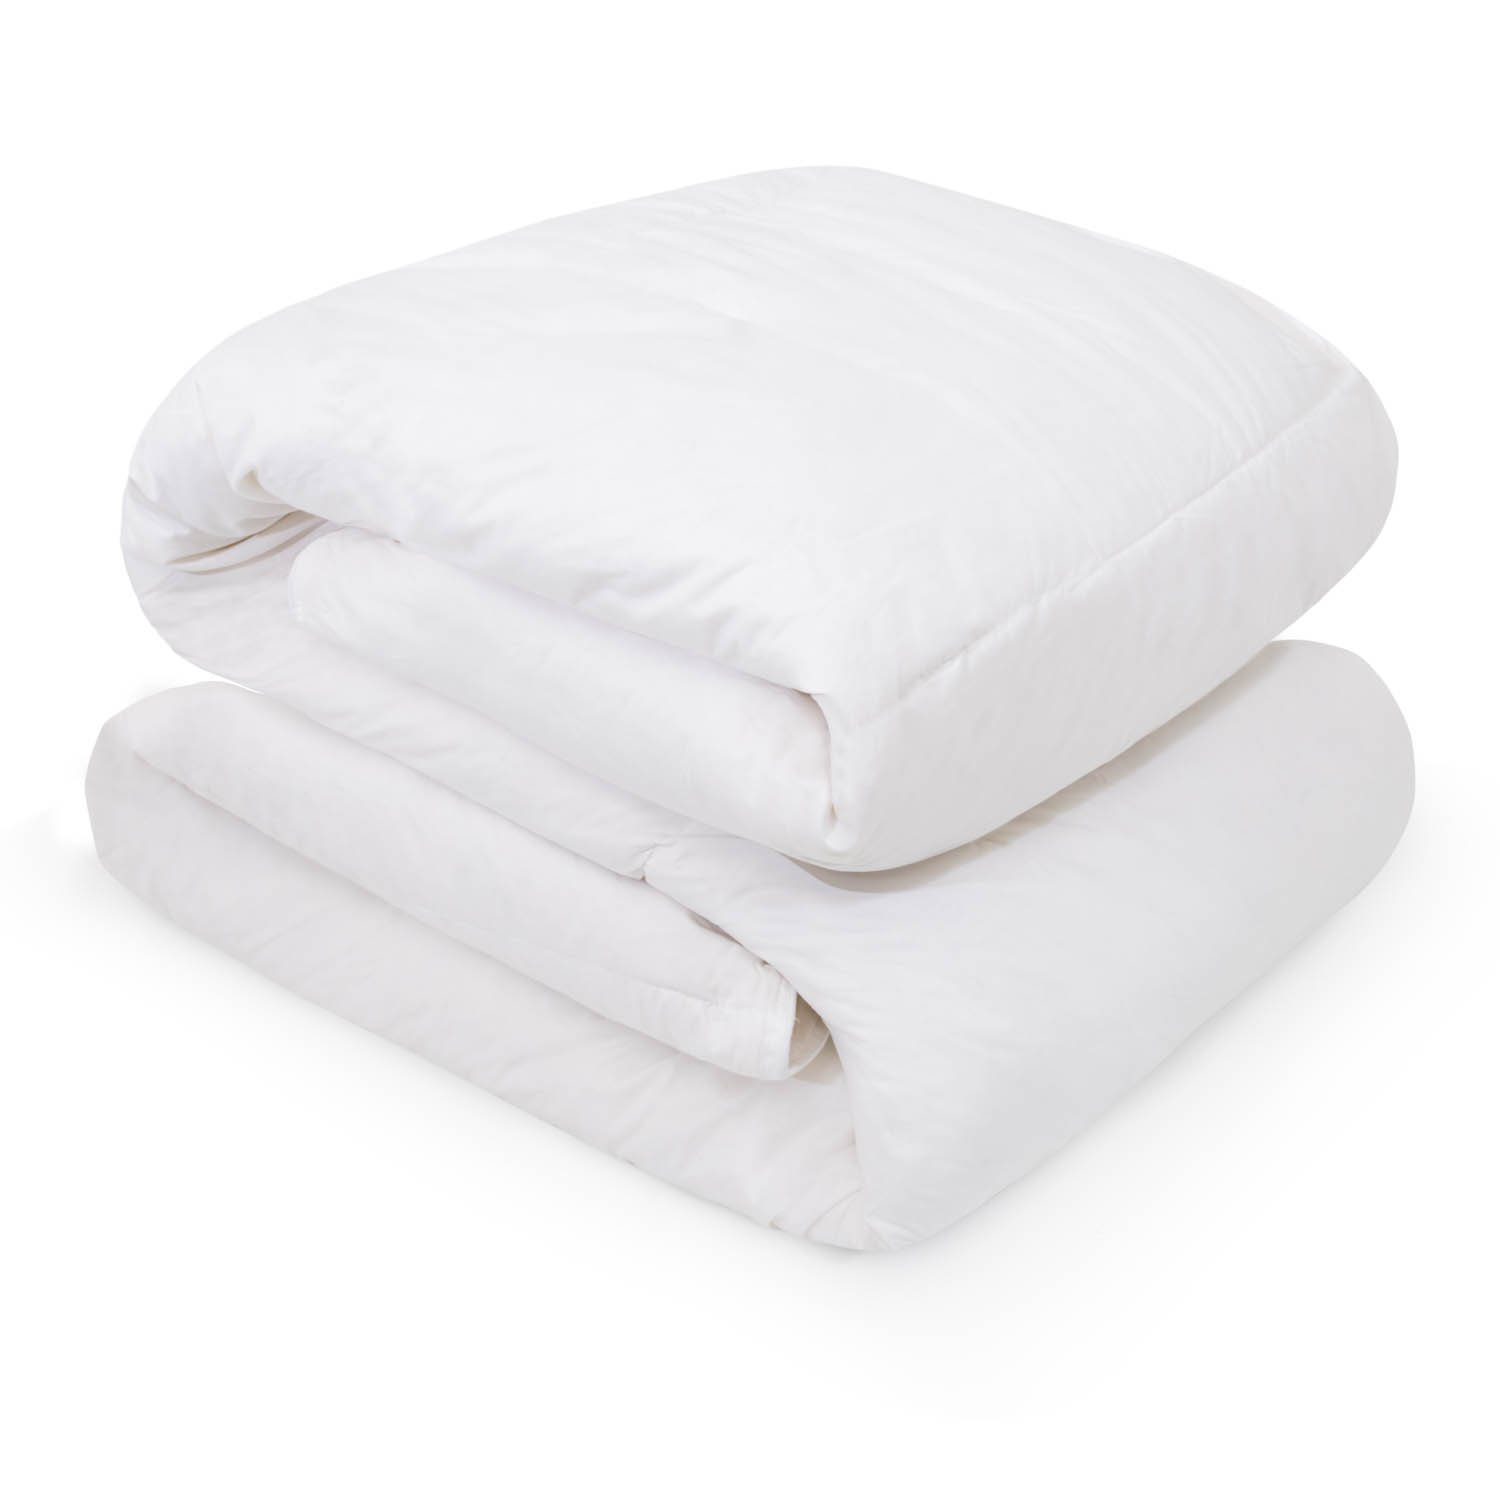 White Down Blend Comforter sold by LINENSPA -100% Cotton Cover and Corner Loops - Oversized Queen